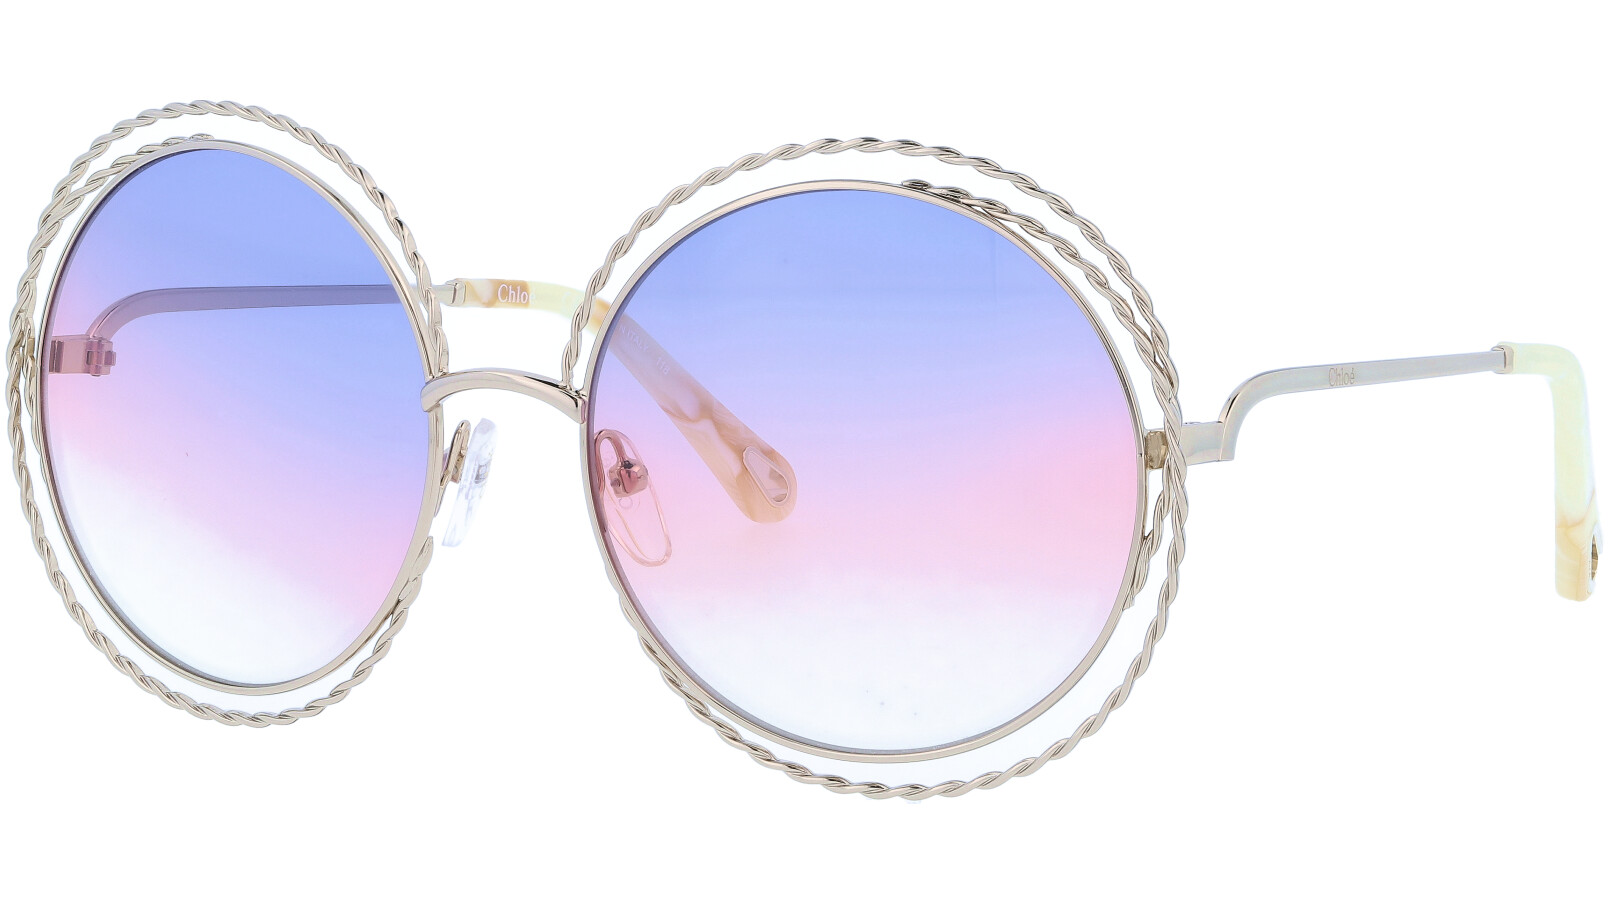 CHLOE CE114ST 779 58 Gold Carlina Round Sunglasses